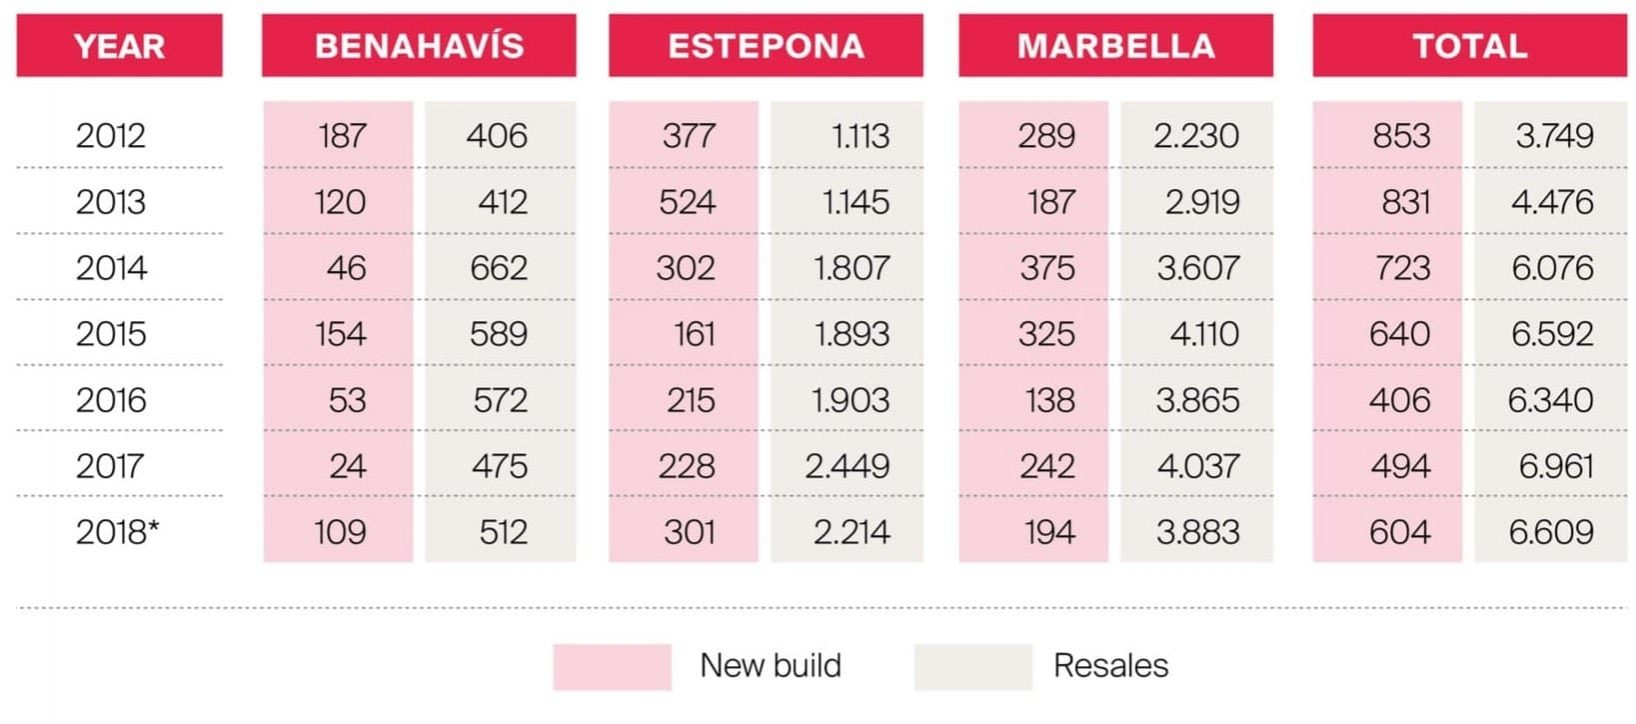 New build vs Resales 2012-2018 by municipality